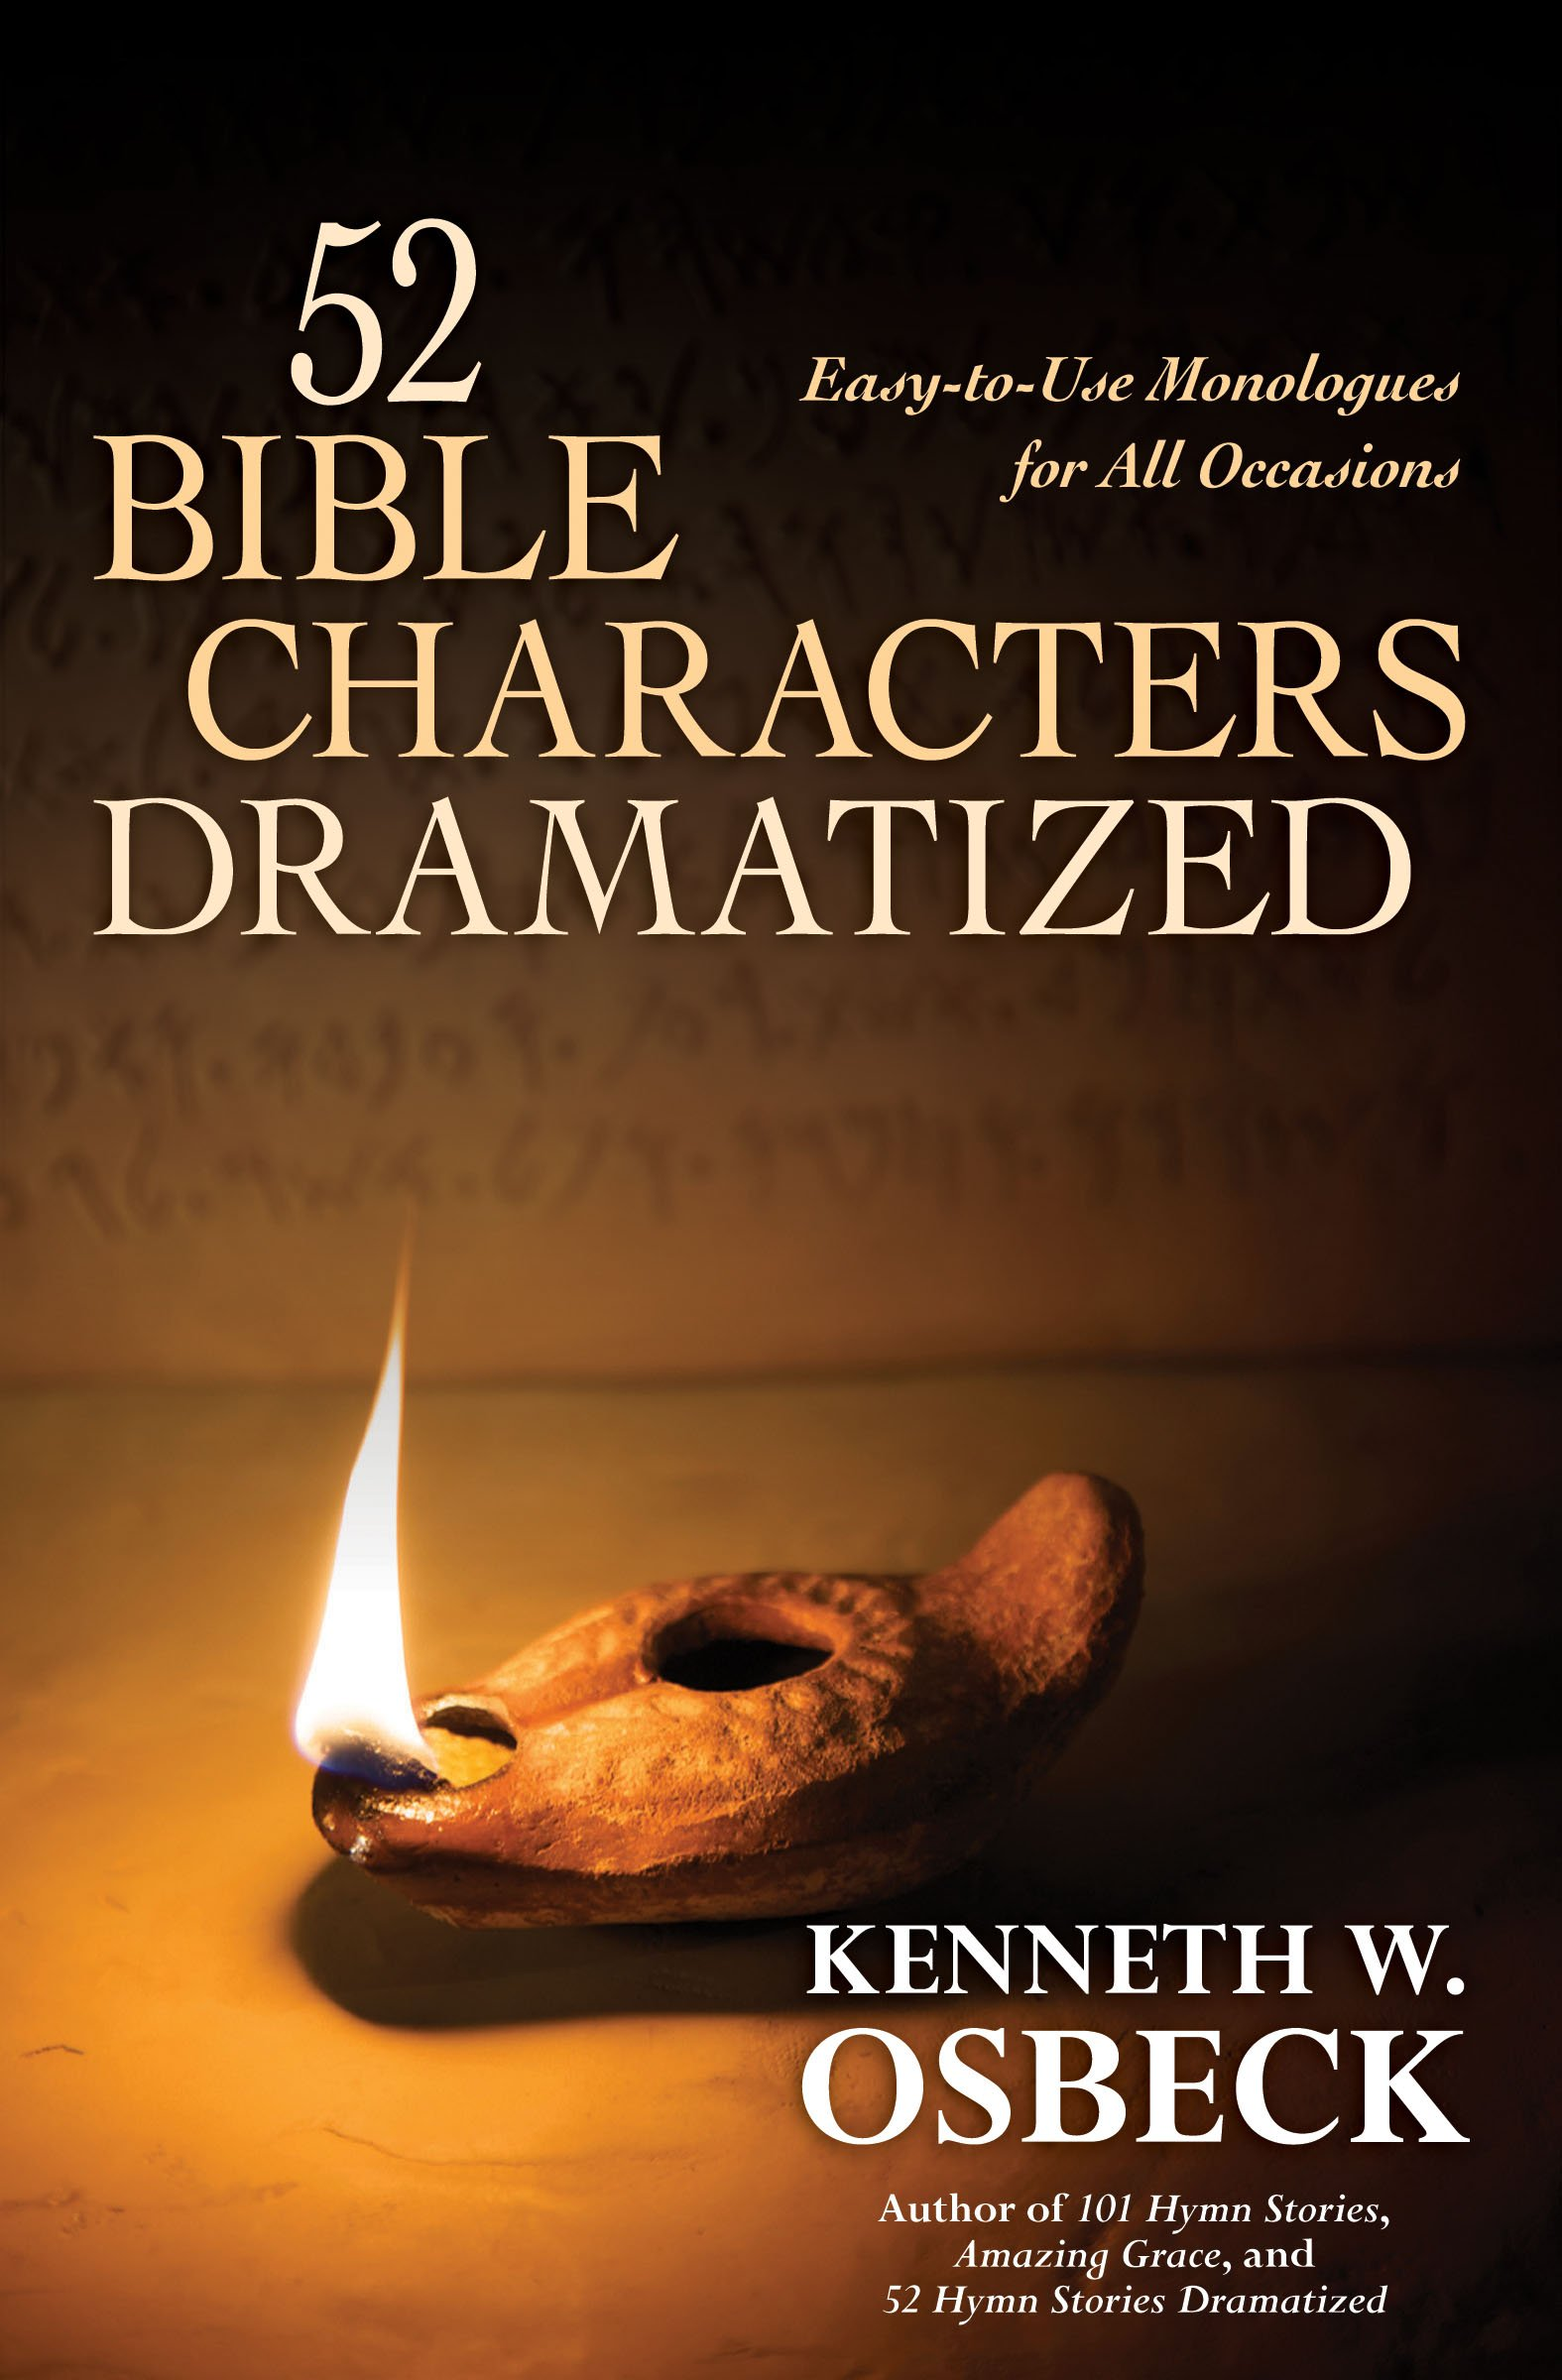 52 bible characters dramatized easy to use monologues for all